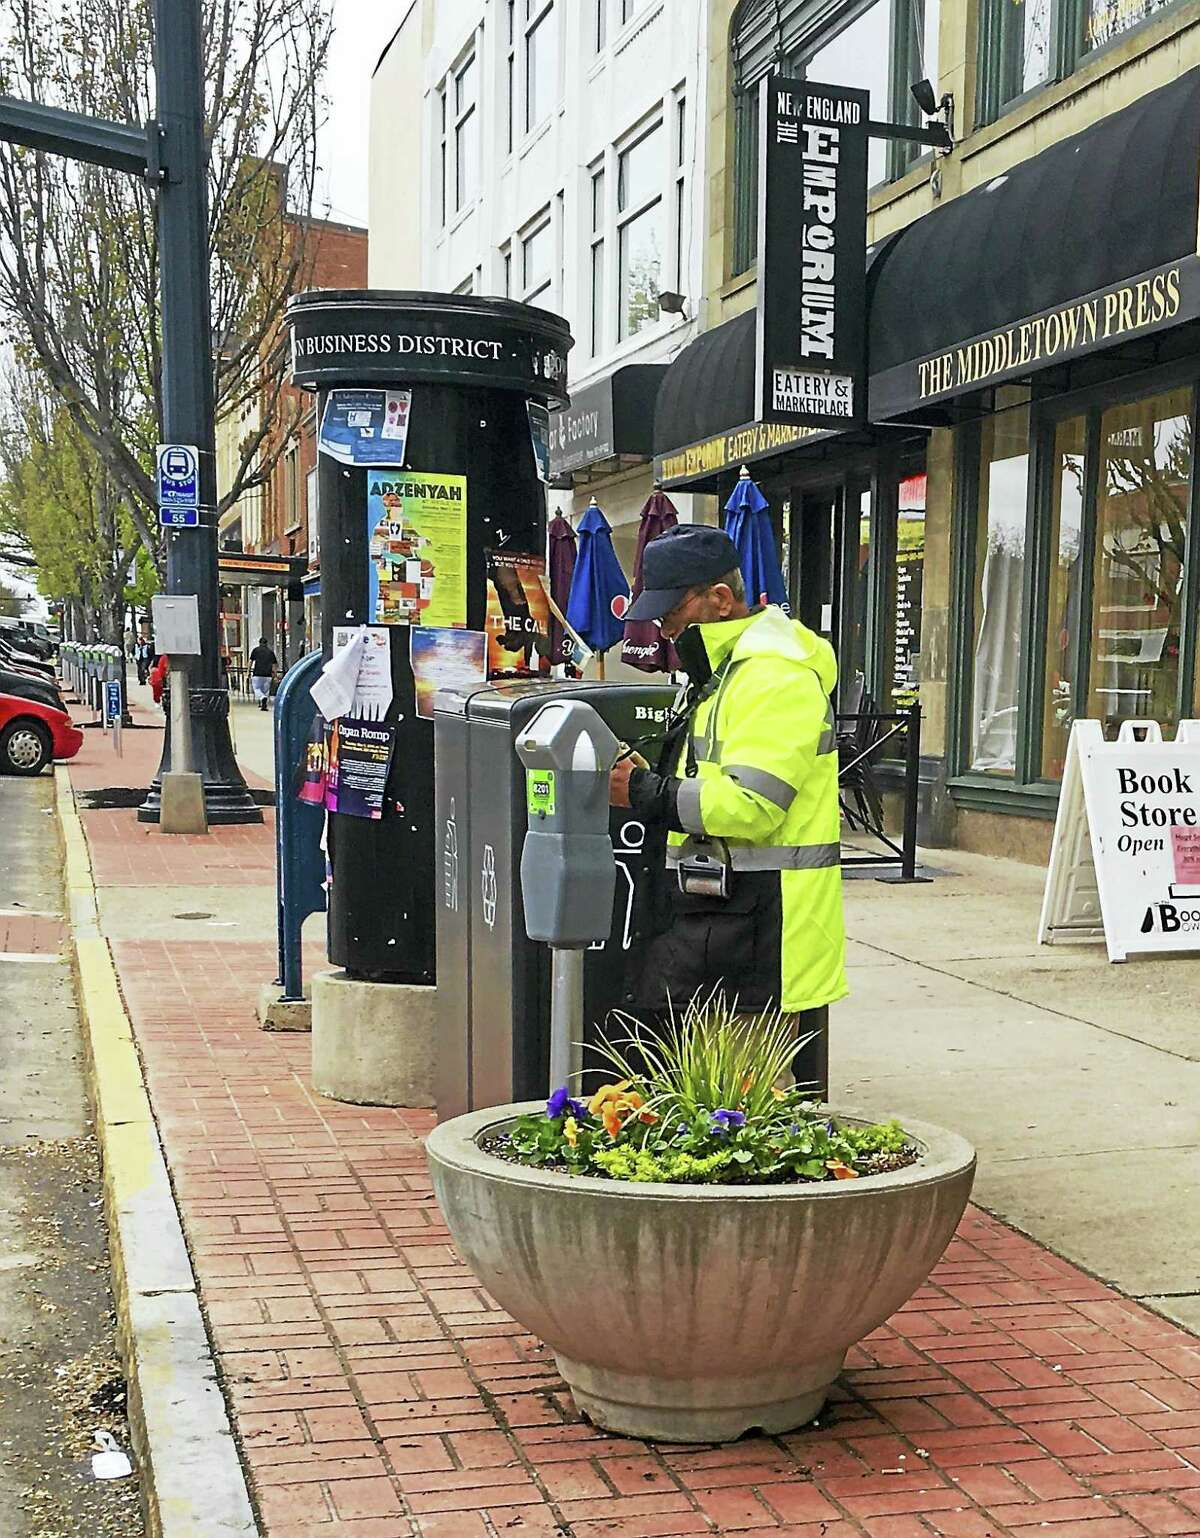 The Common Council approved two new changes to ordinances that would eliminate the city's parking fund and also increase the penalty charges for paying fines late. After one week, a parking ticket will double to $20 and after two weeks, it will reach a maximum fine of $40.